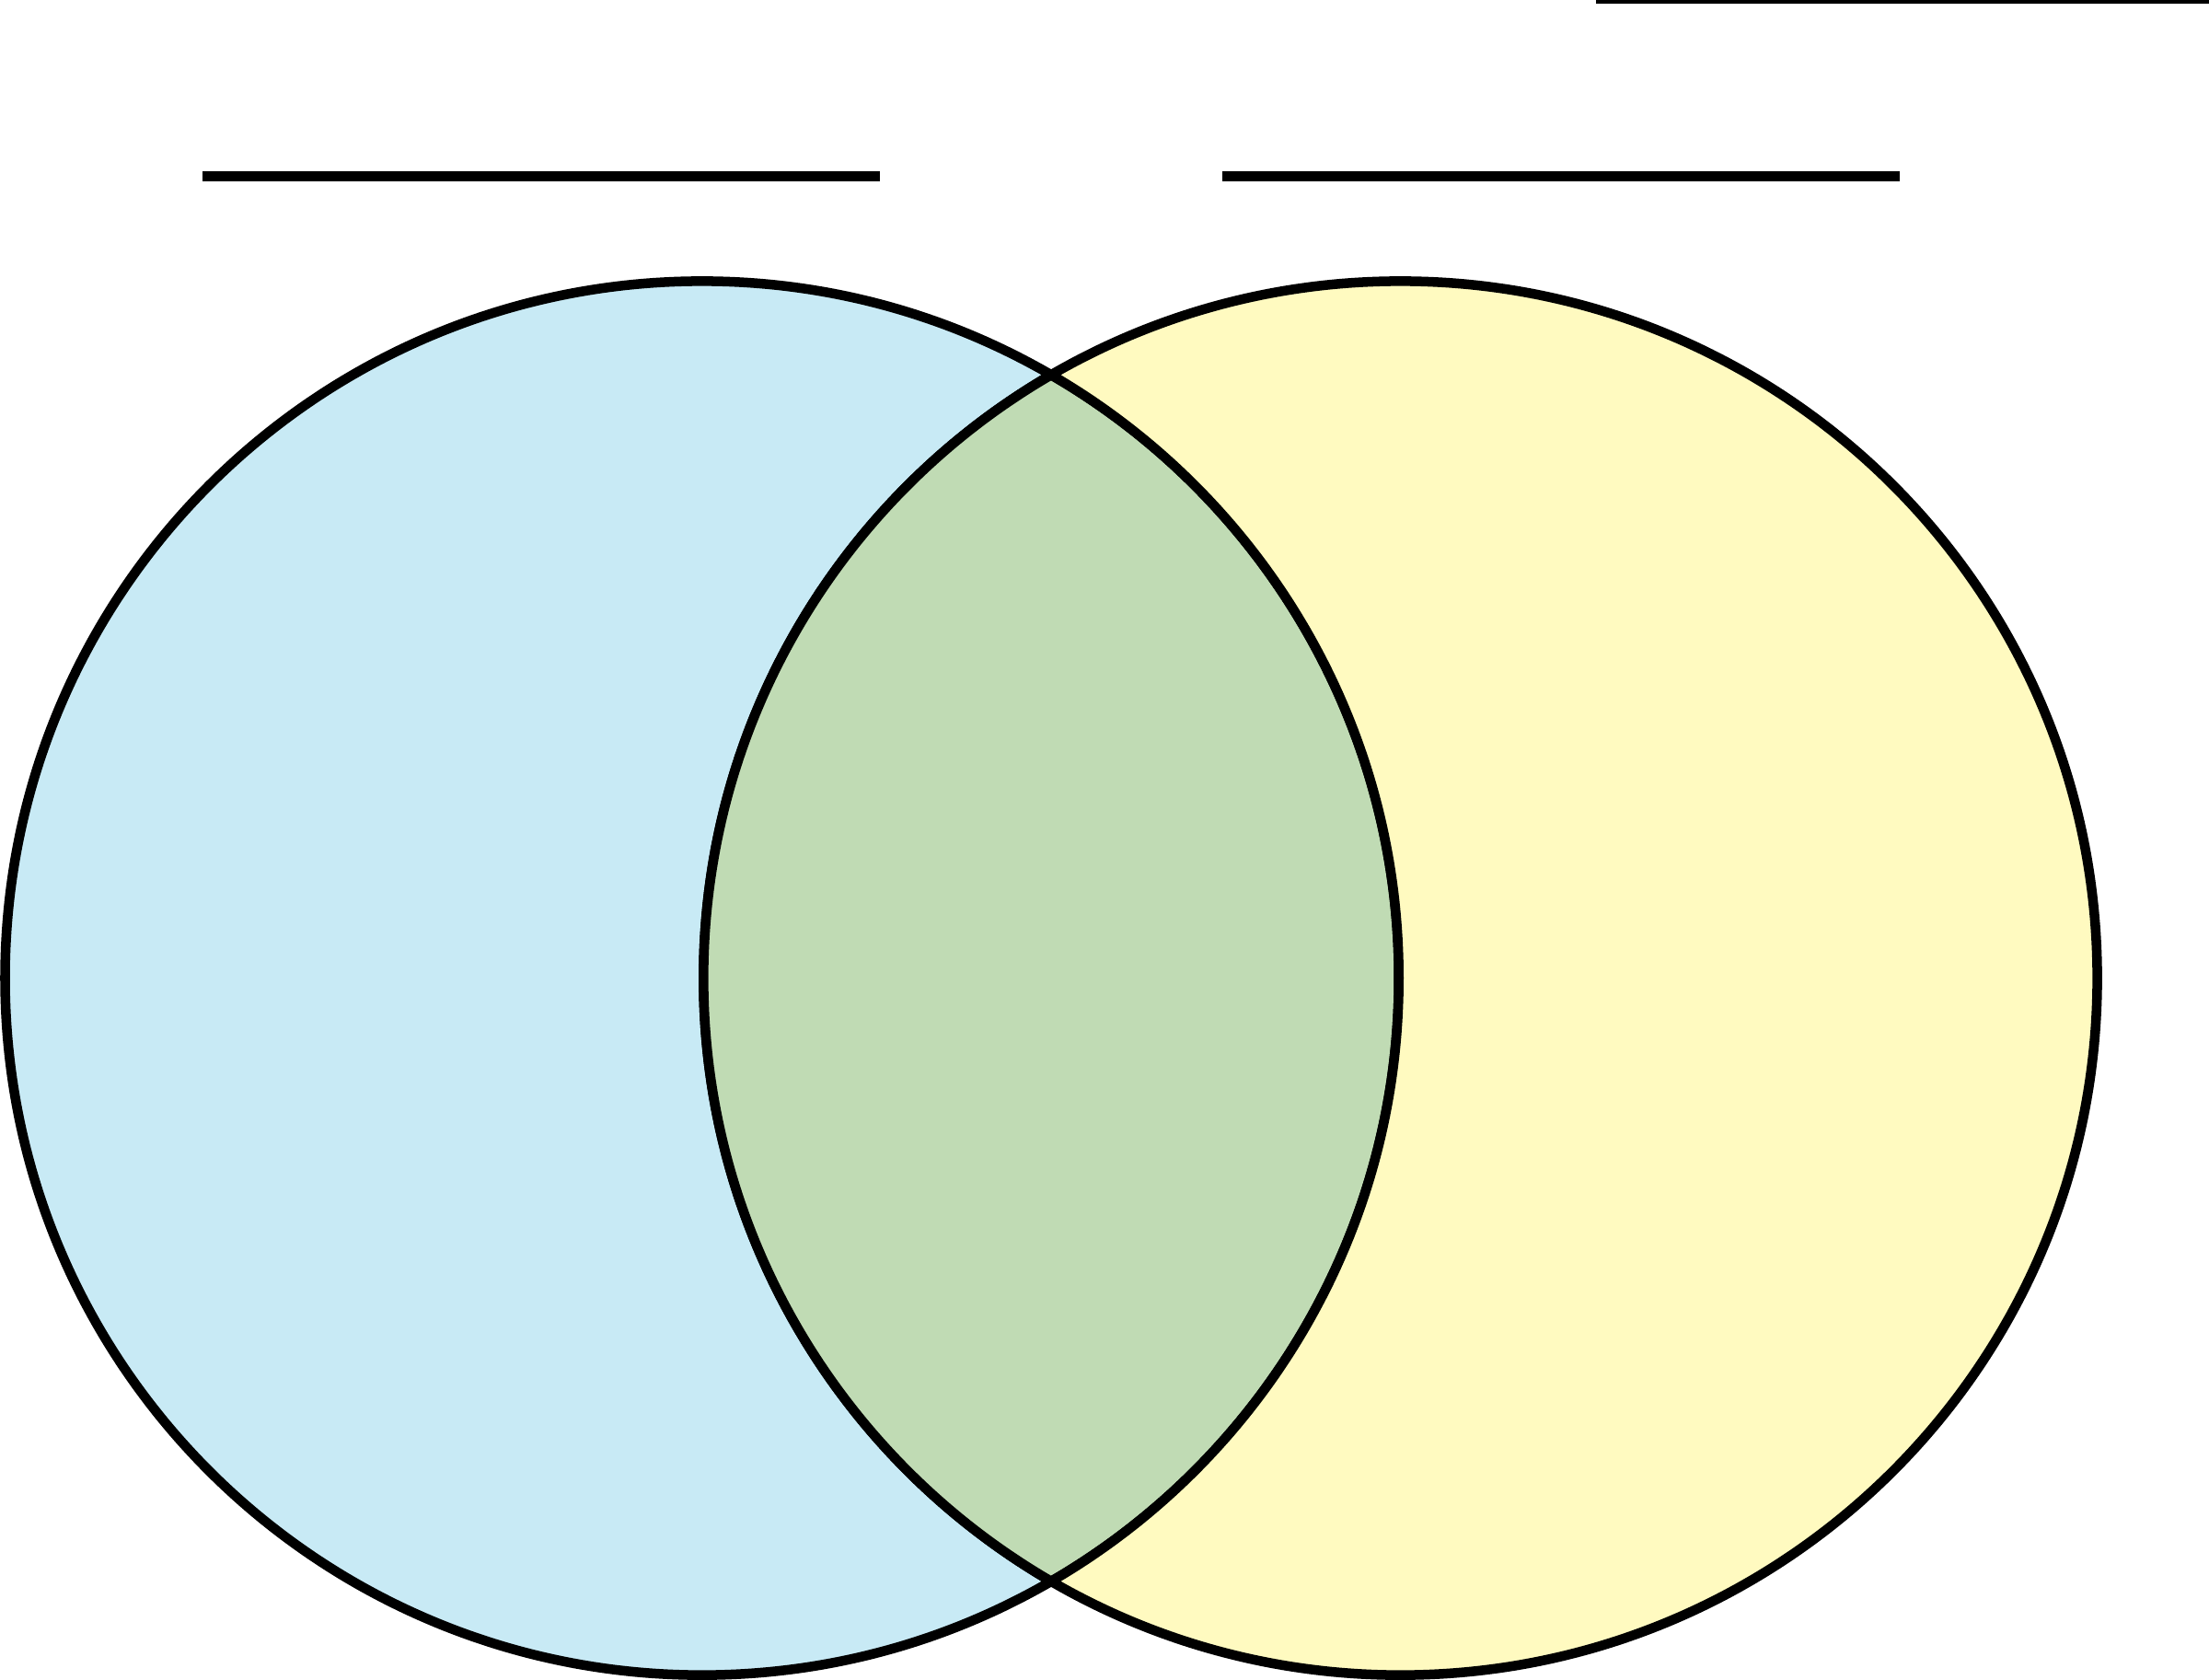 three circle venn diagram printable cummins n14 celect plus wiring 2 color template free download